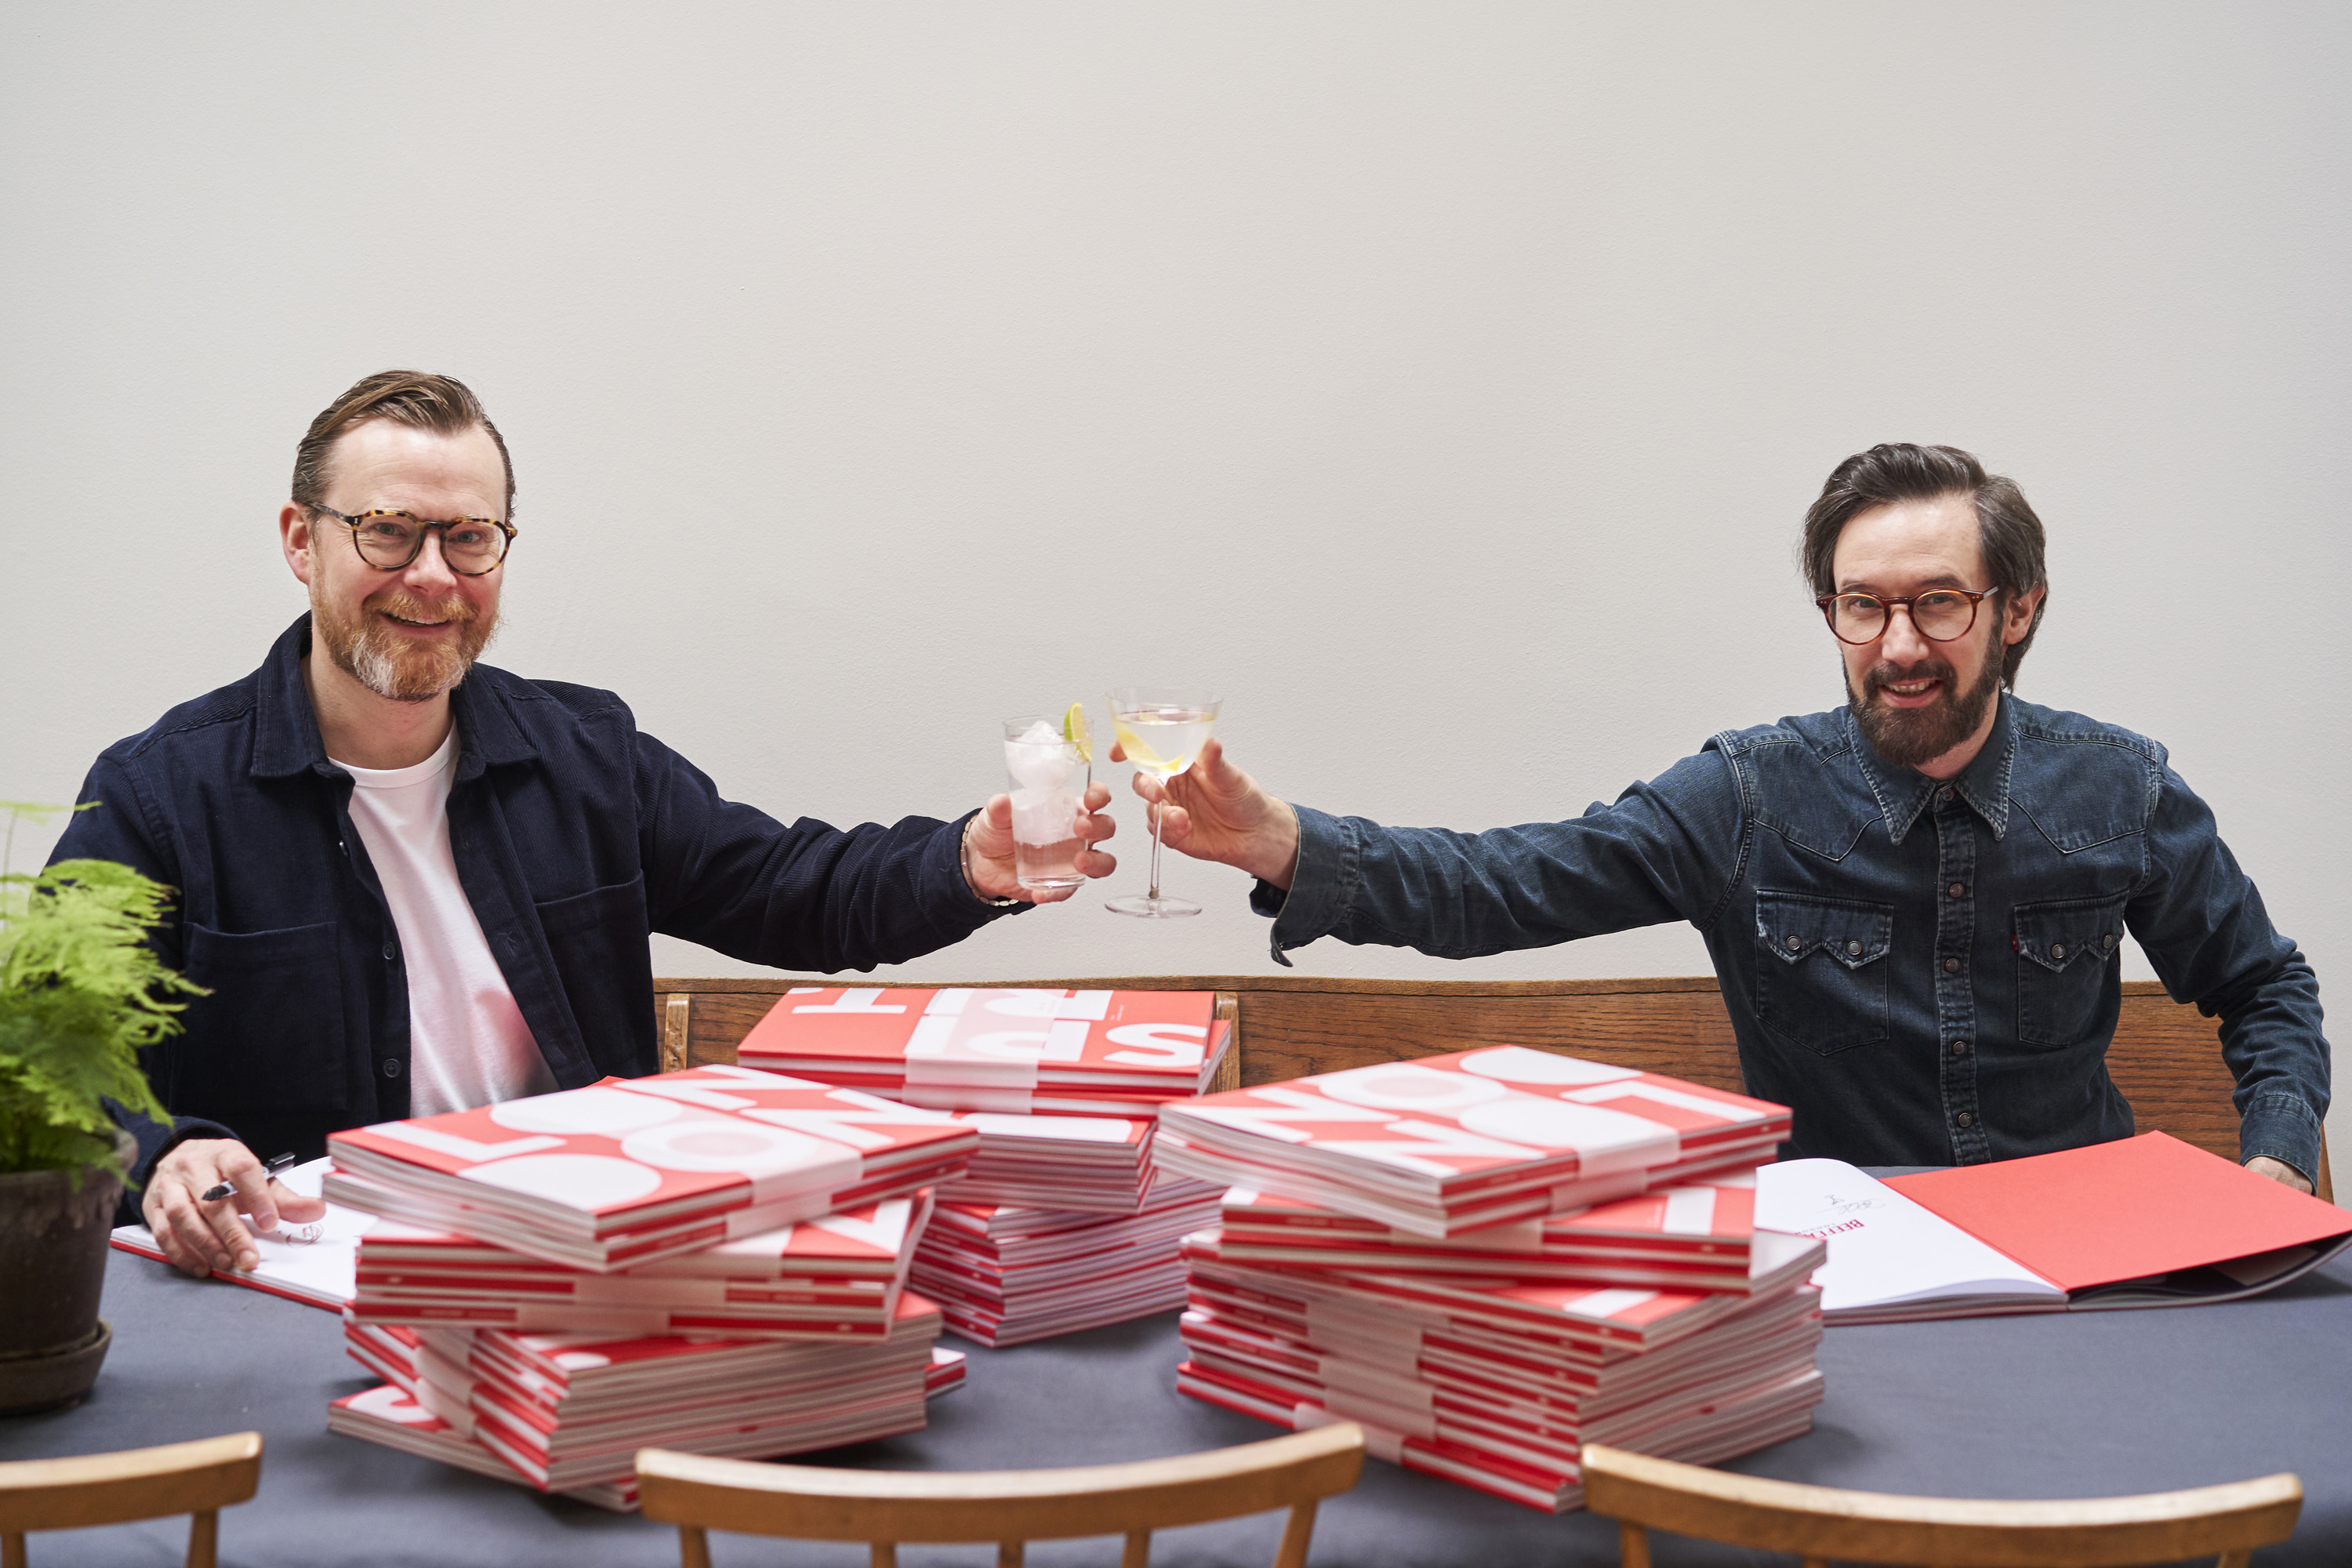 Beefeater book signing with Joel Harrison and Neil Ridley